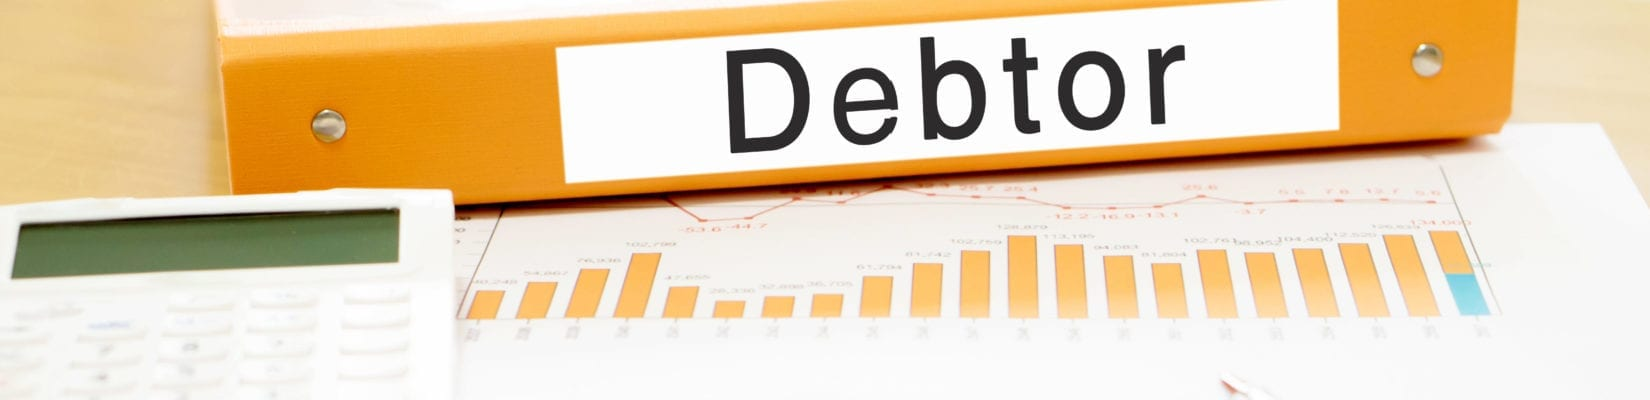 Debtor Management Help and User Guide